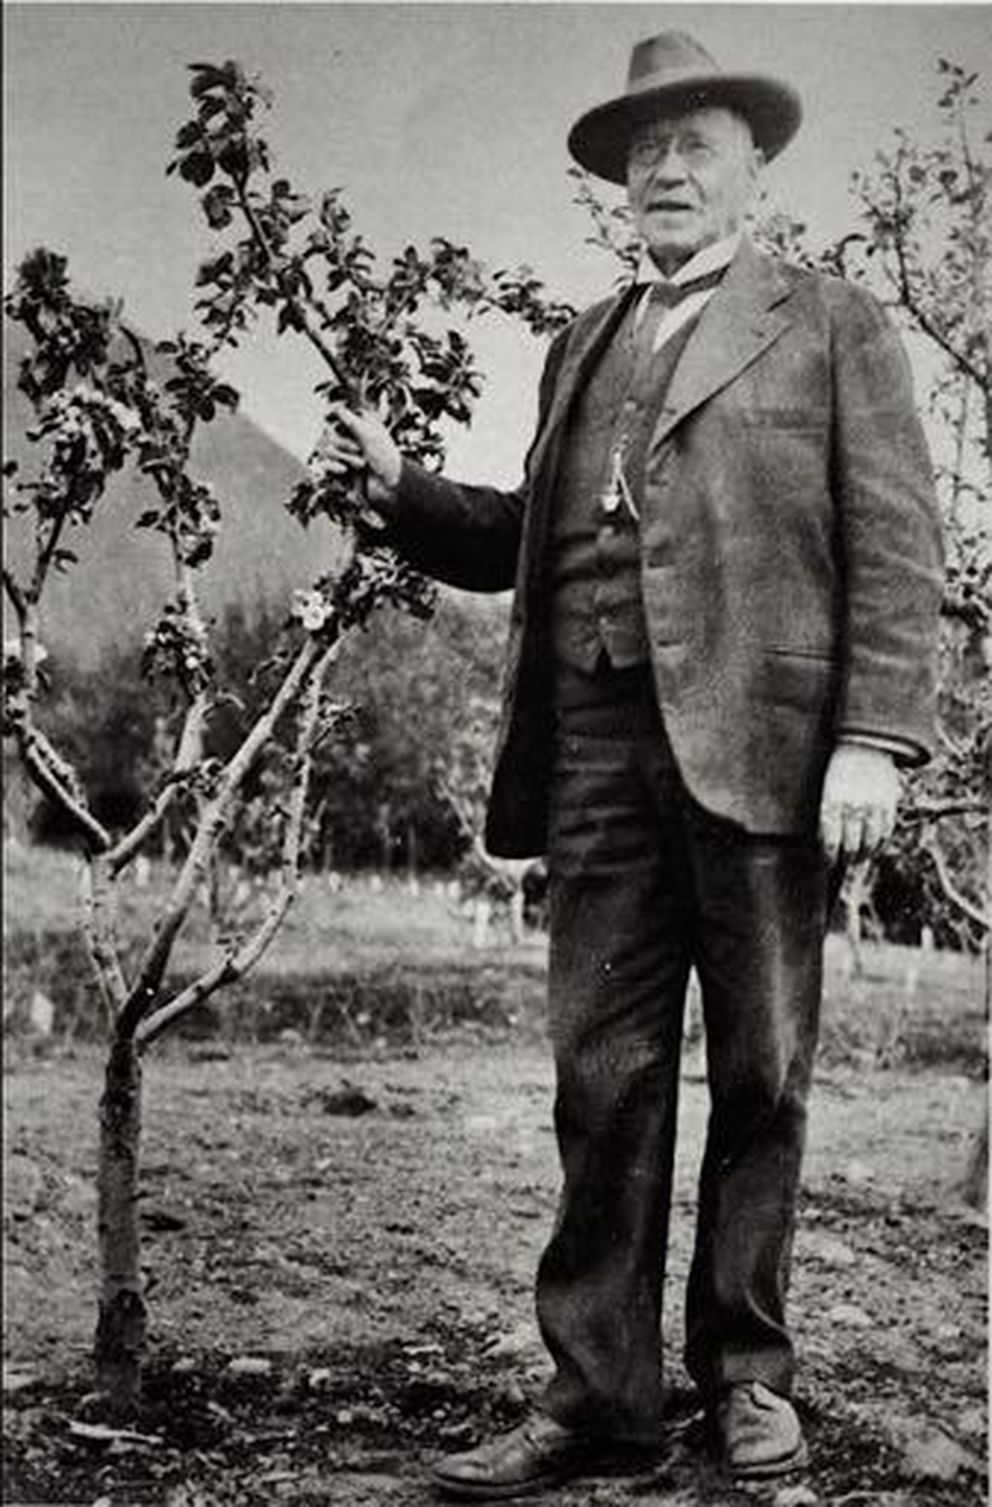 Charles Georgeson with an apple tree in Sitka around the year 1900. (Public domain photo by E.W. Merrill)